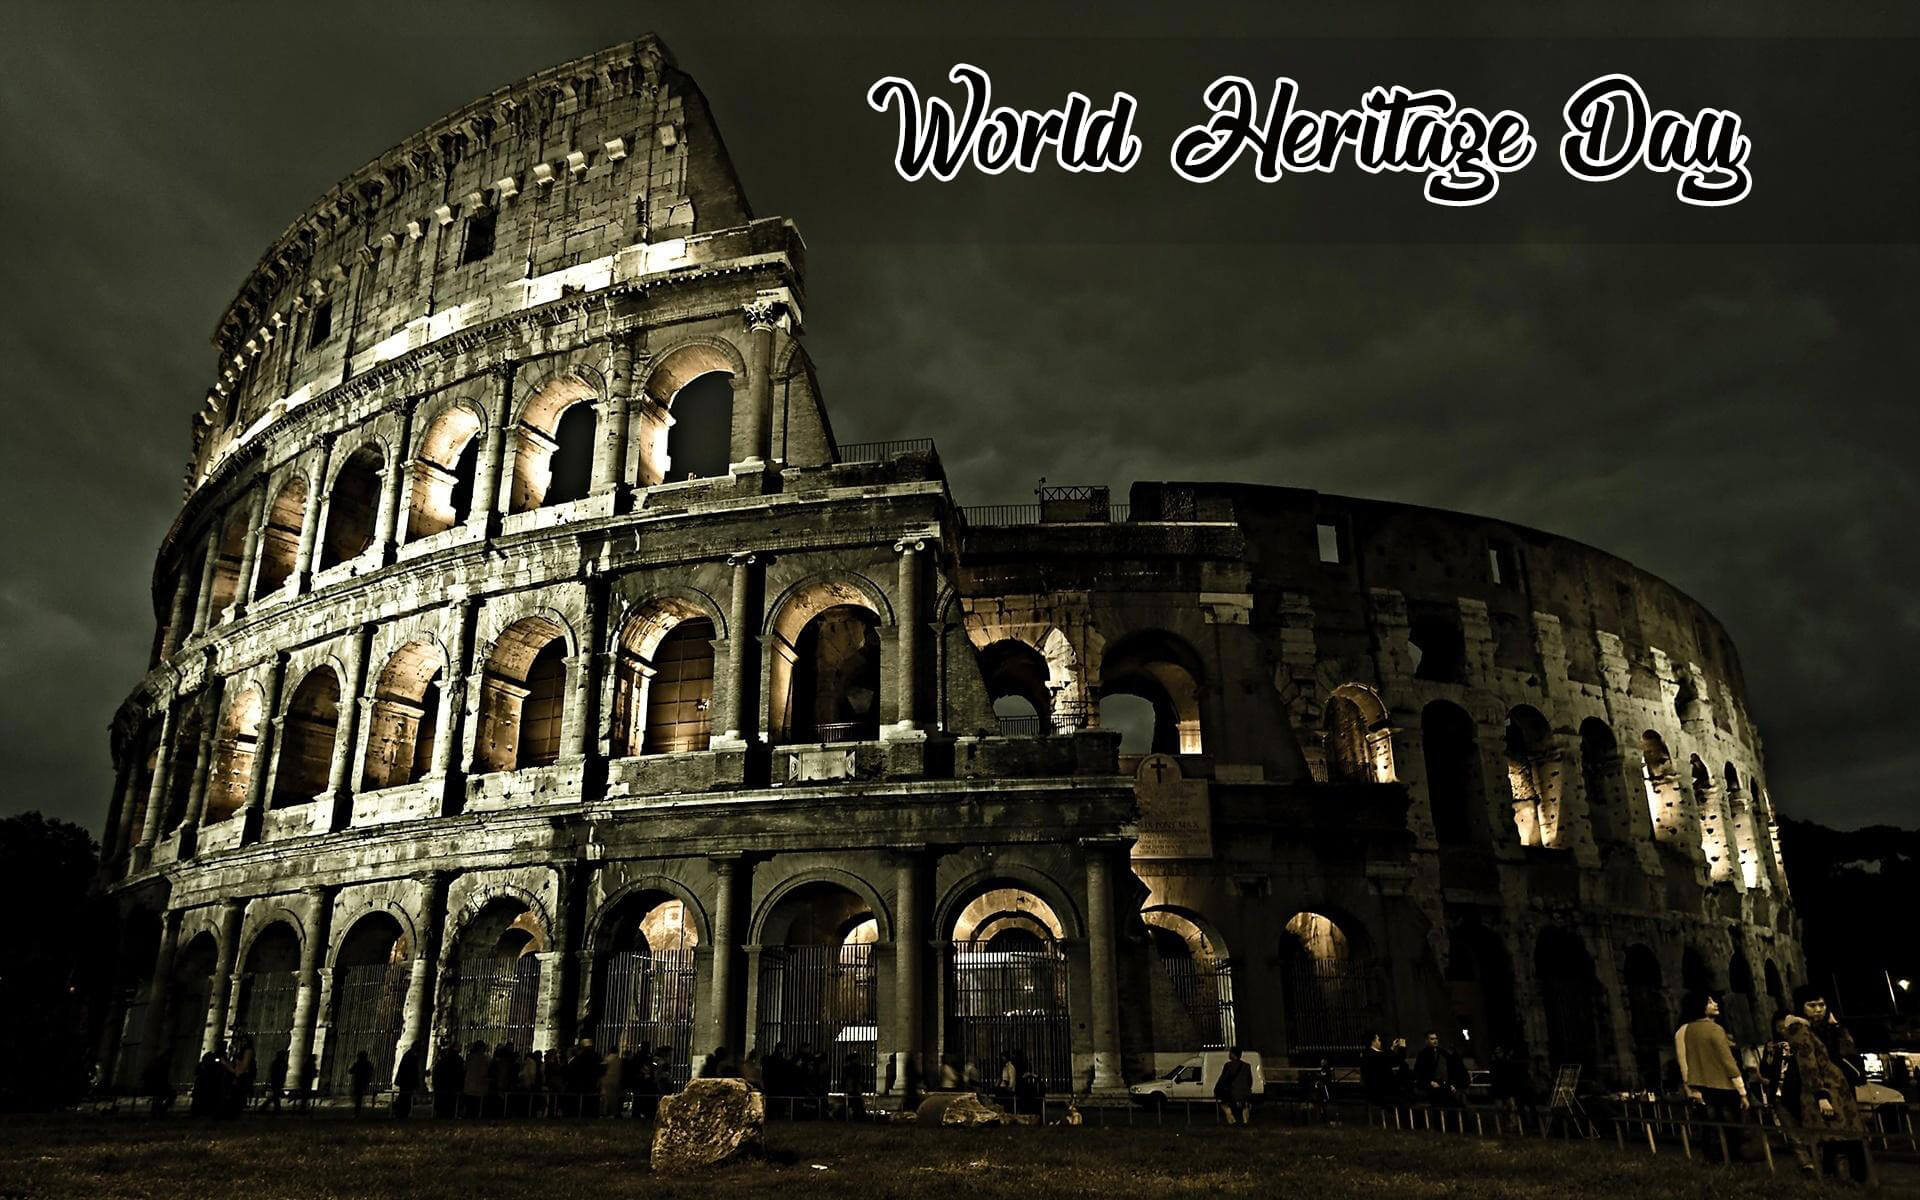 world heritage day seven wonders rome italy colosseum hd wallpaper